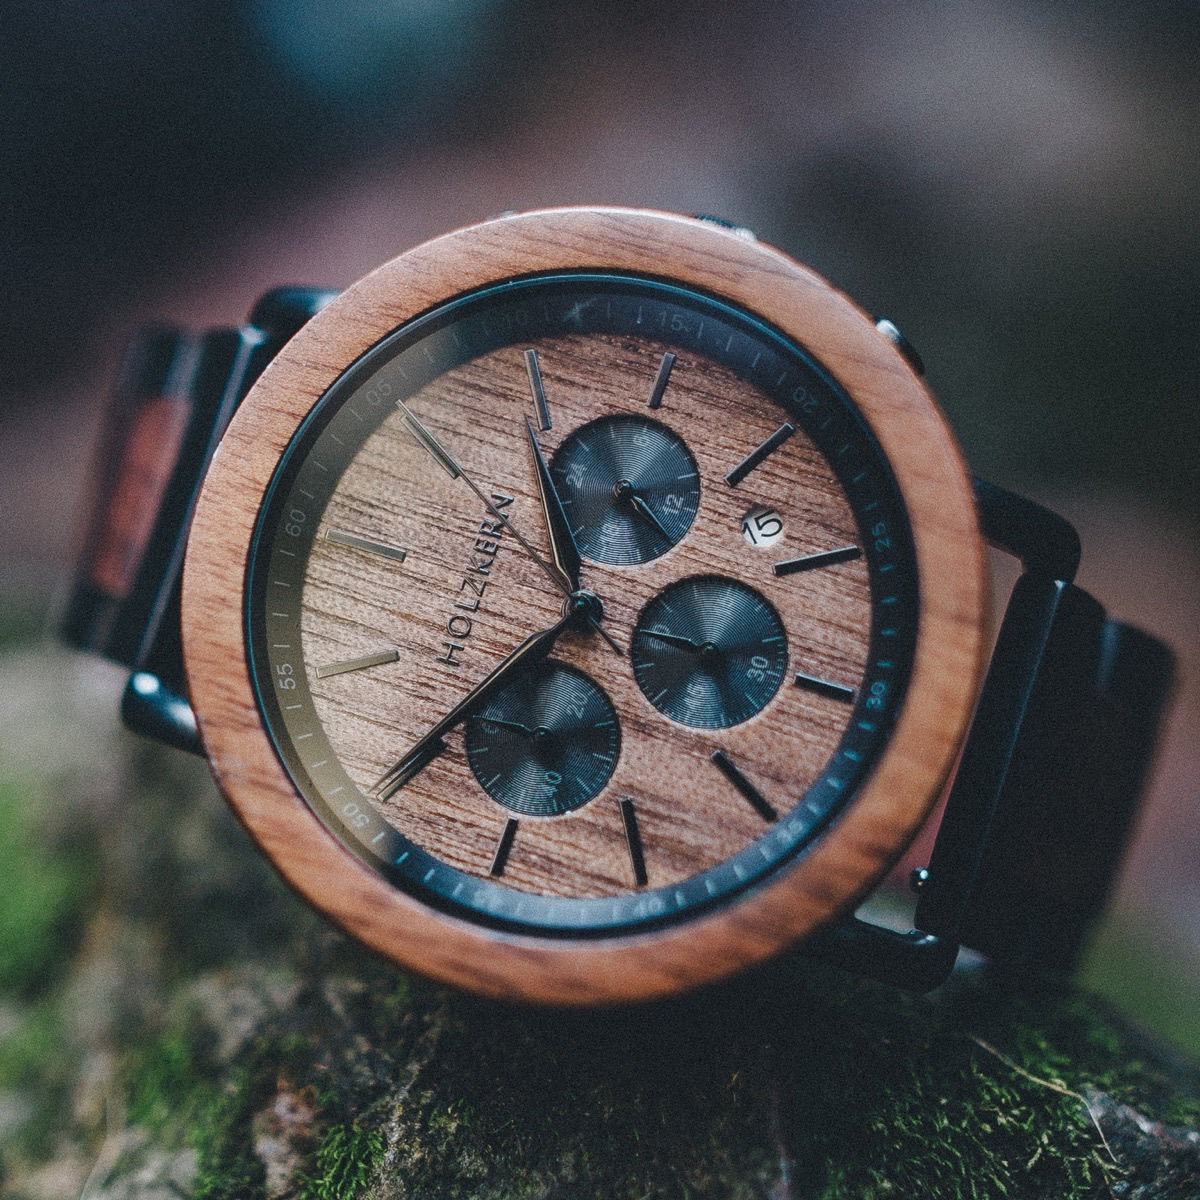 A look onto the dial of the wood watch Dusk by Holzkern